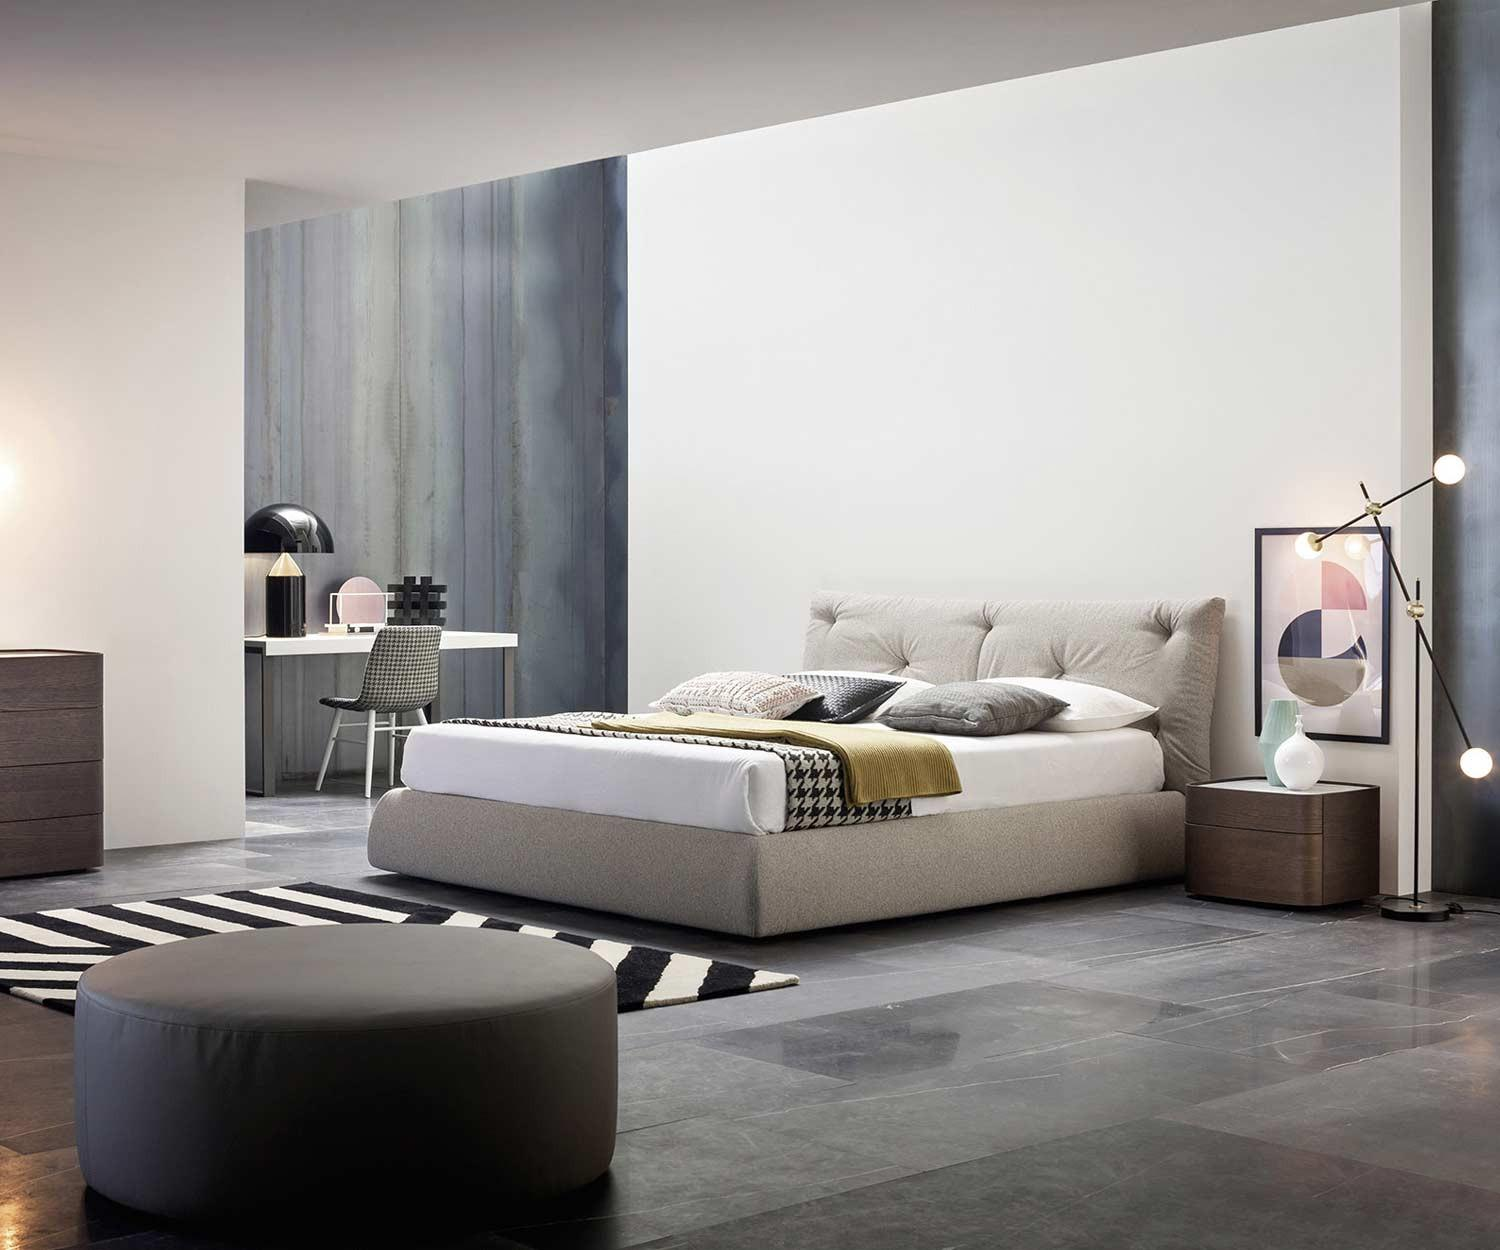 designer betten kleines ideen designer bett mit bettkasten bilder das sieht elegantes gerumiges. Black Bedroom Furniture Sets. Home Design Ideas